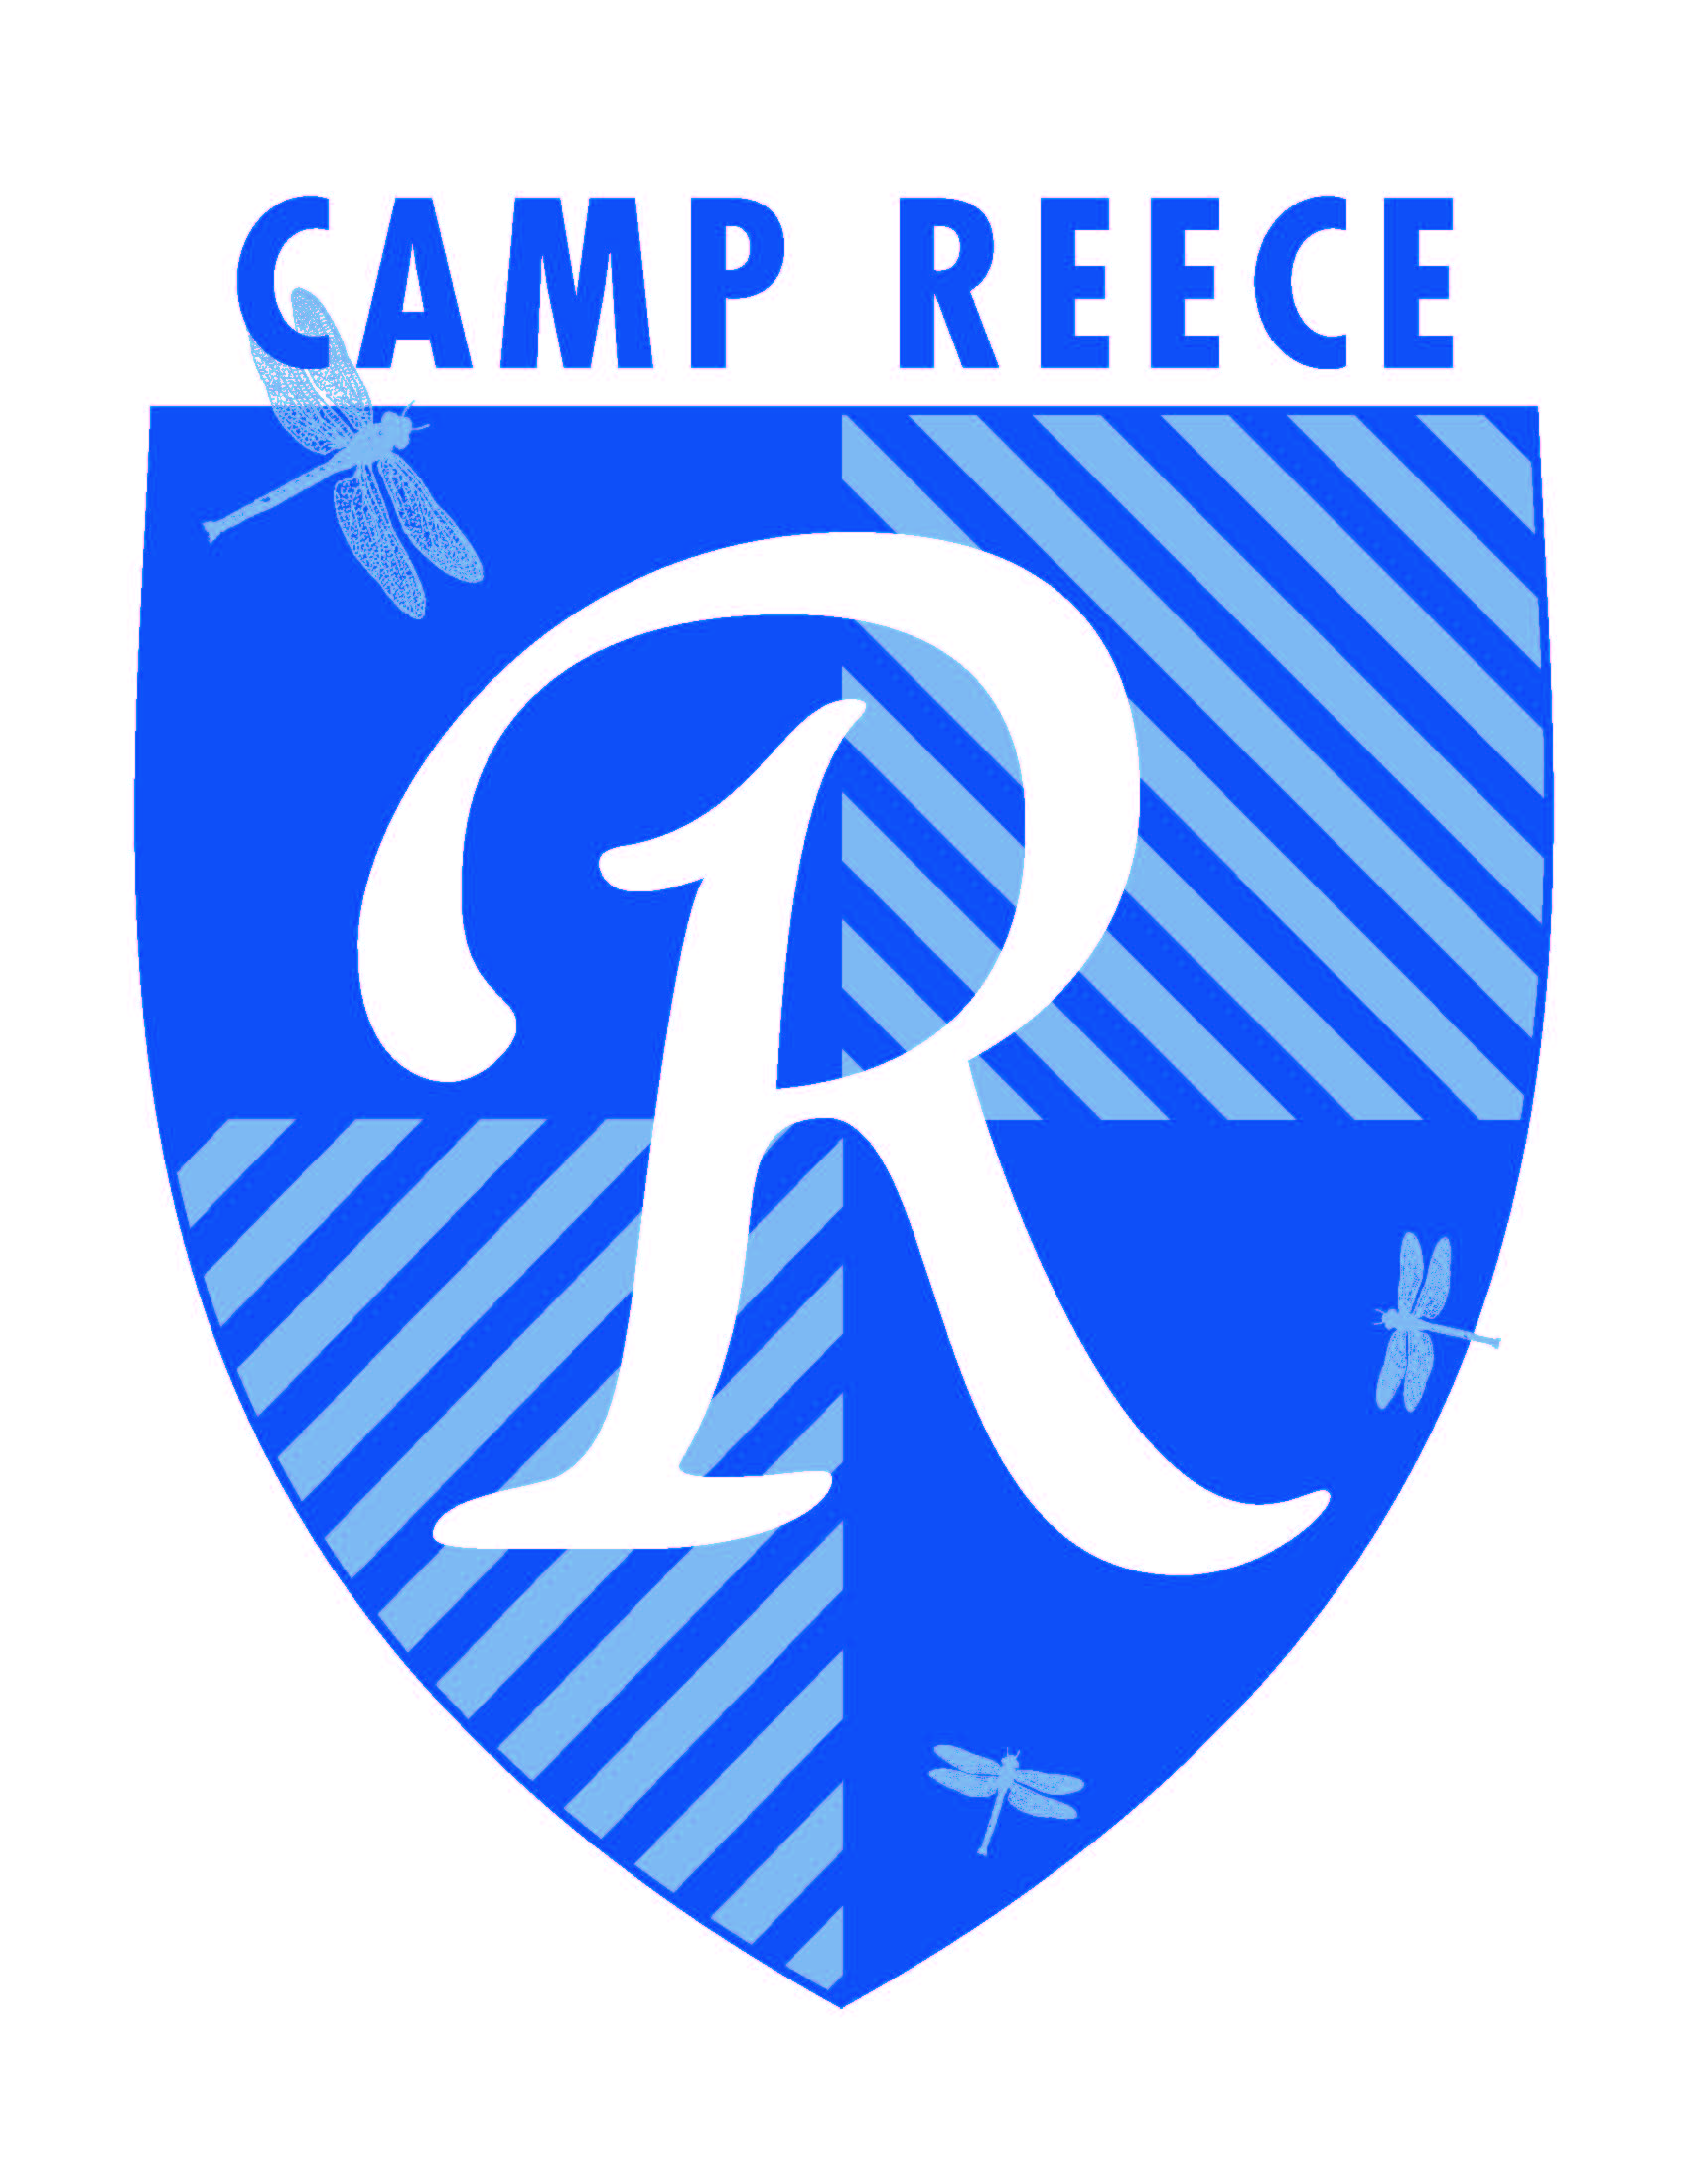 Camp Reece at Skidmore College